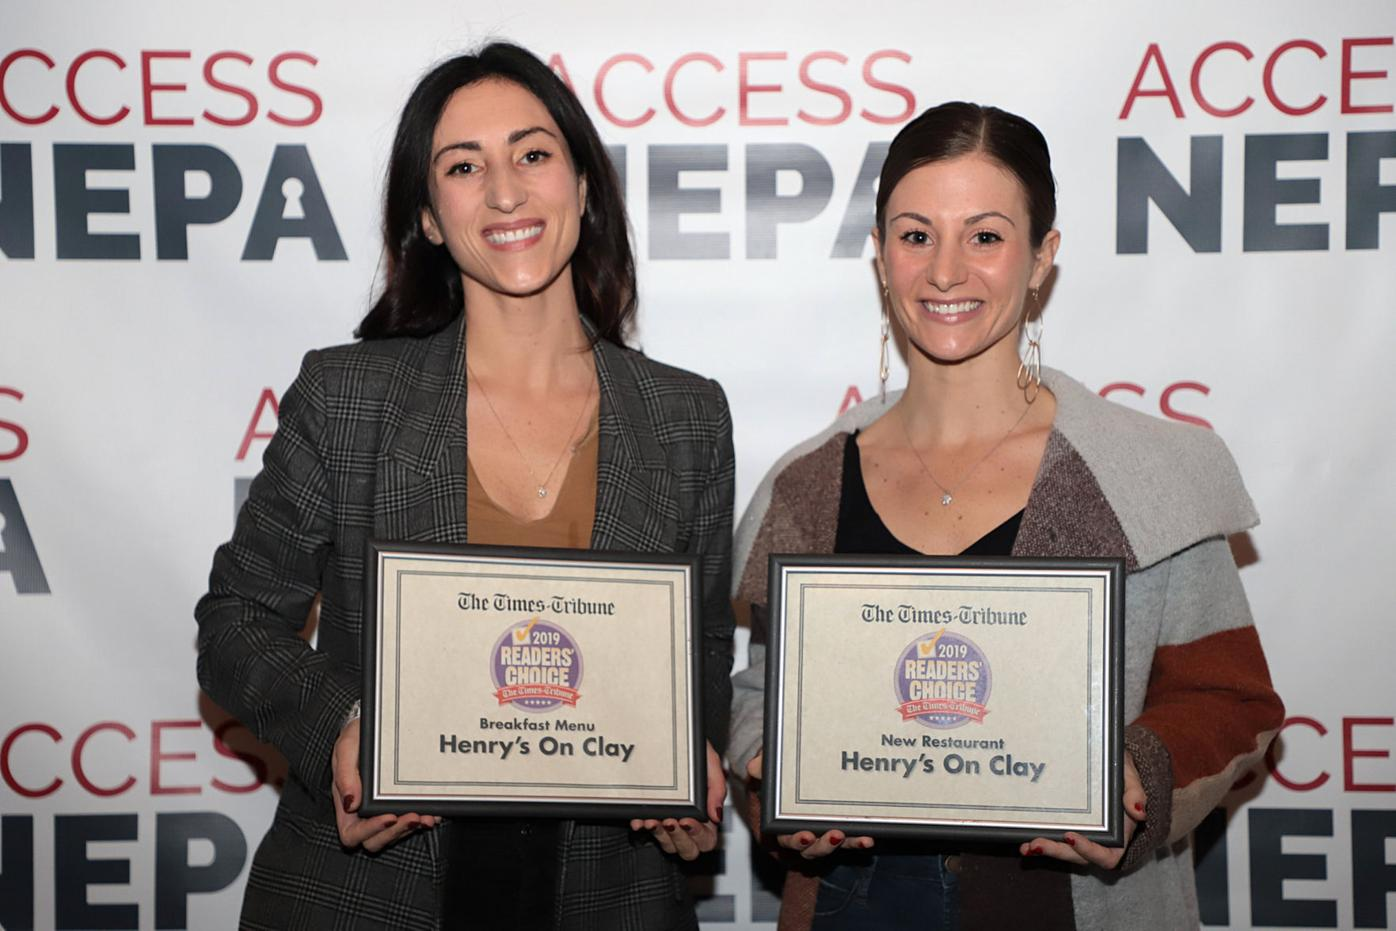 Sisters, Ellen, left, and Lizzie Sallusti, of Henry's on Clay, a